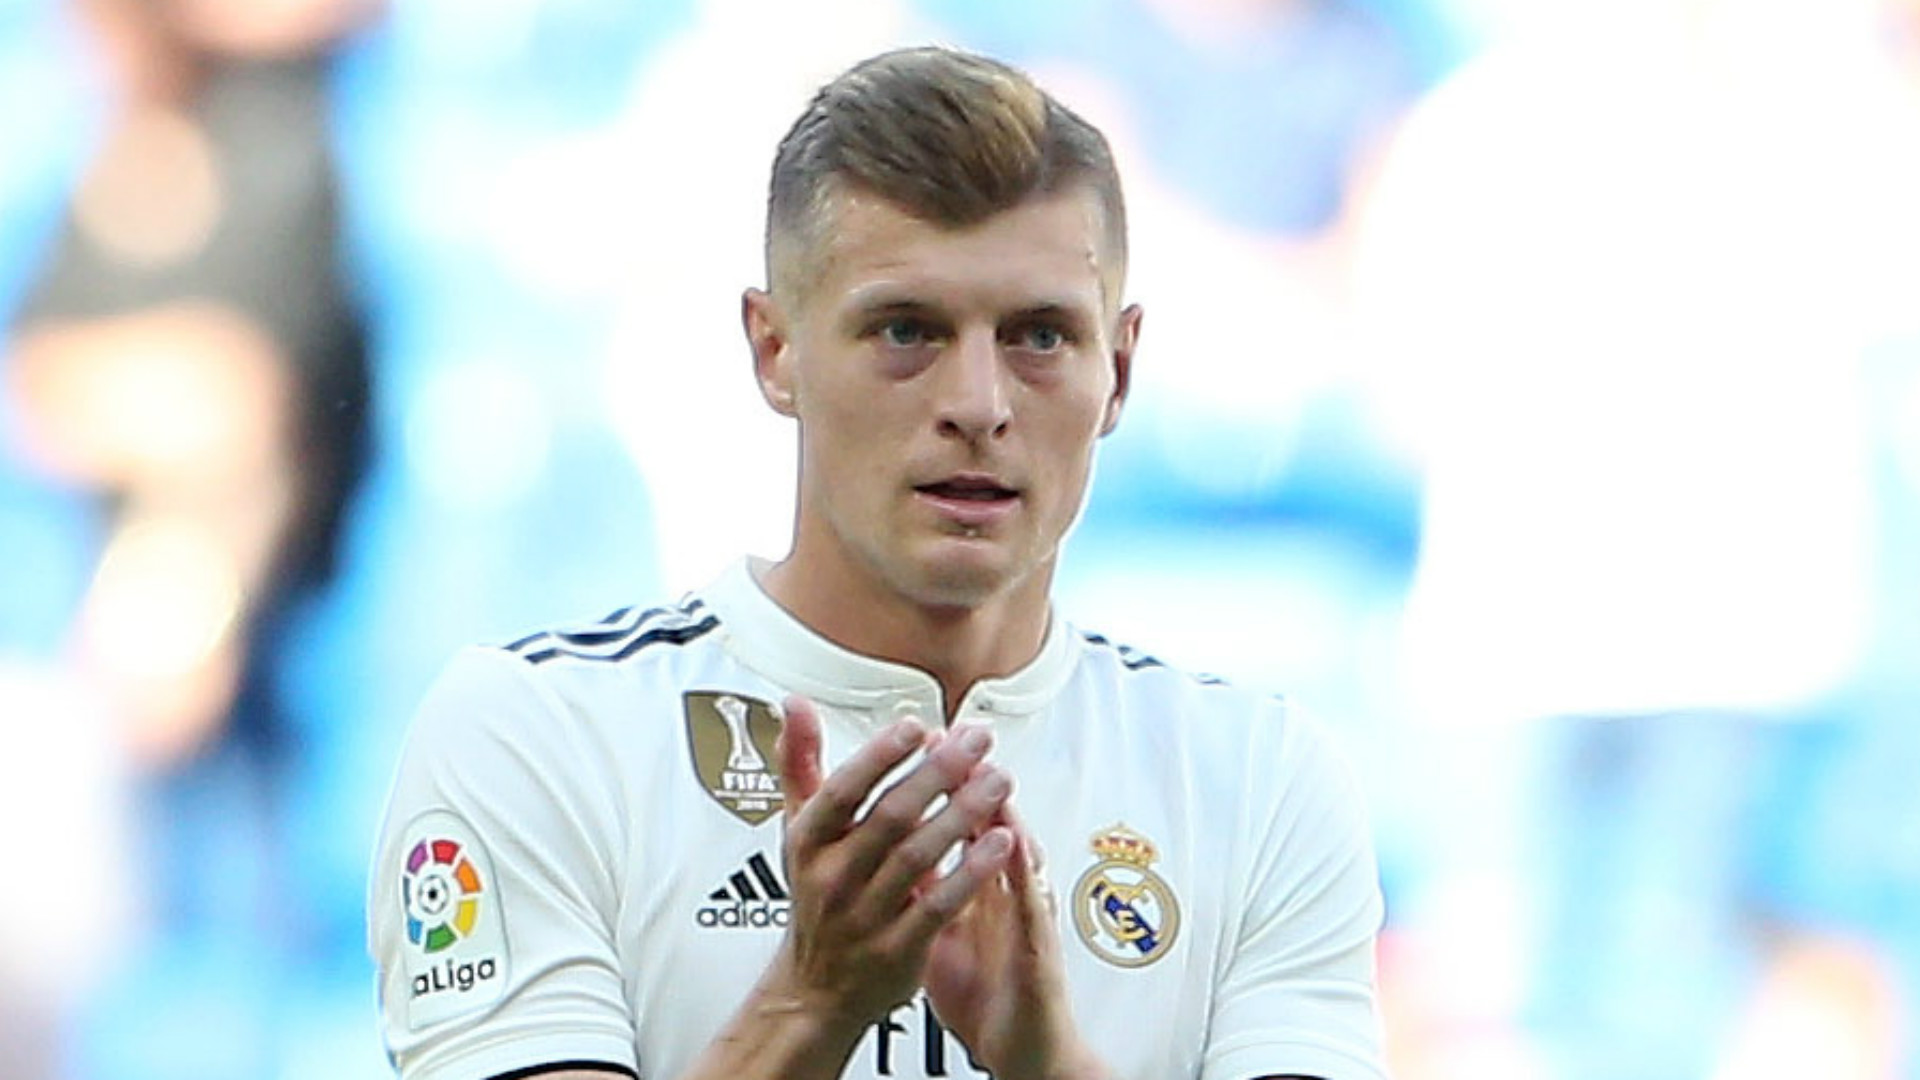 Toni Kroos agrees contract extension with Real Madrid